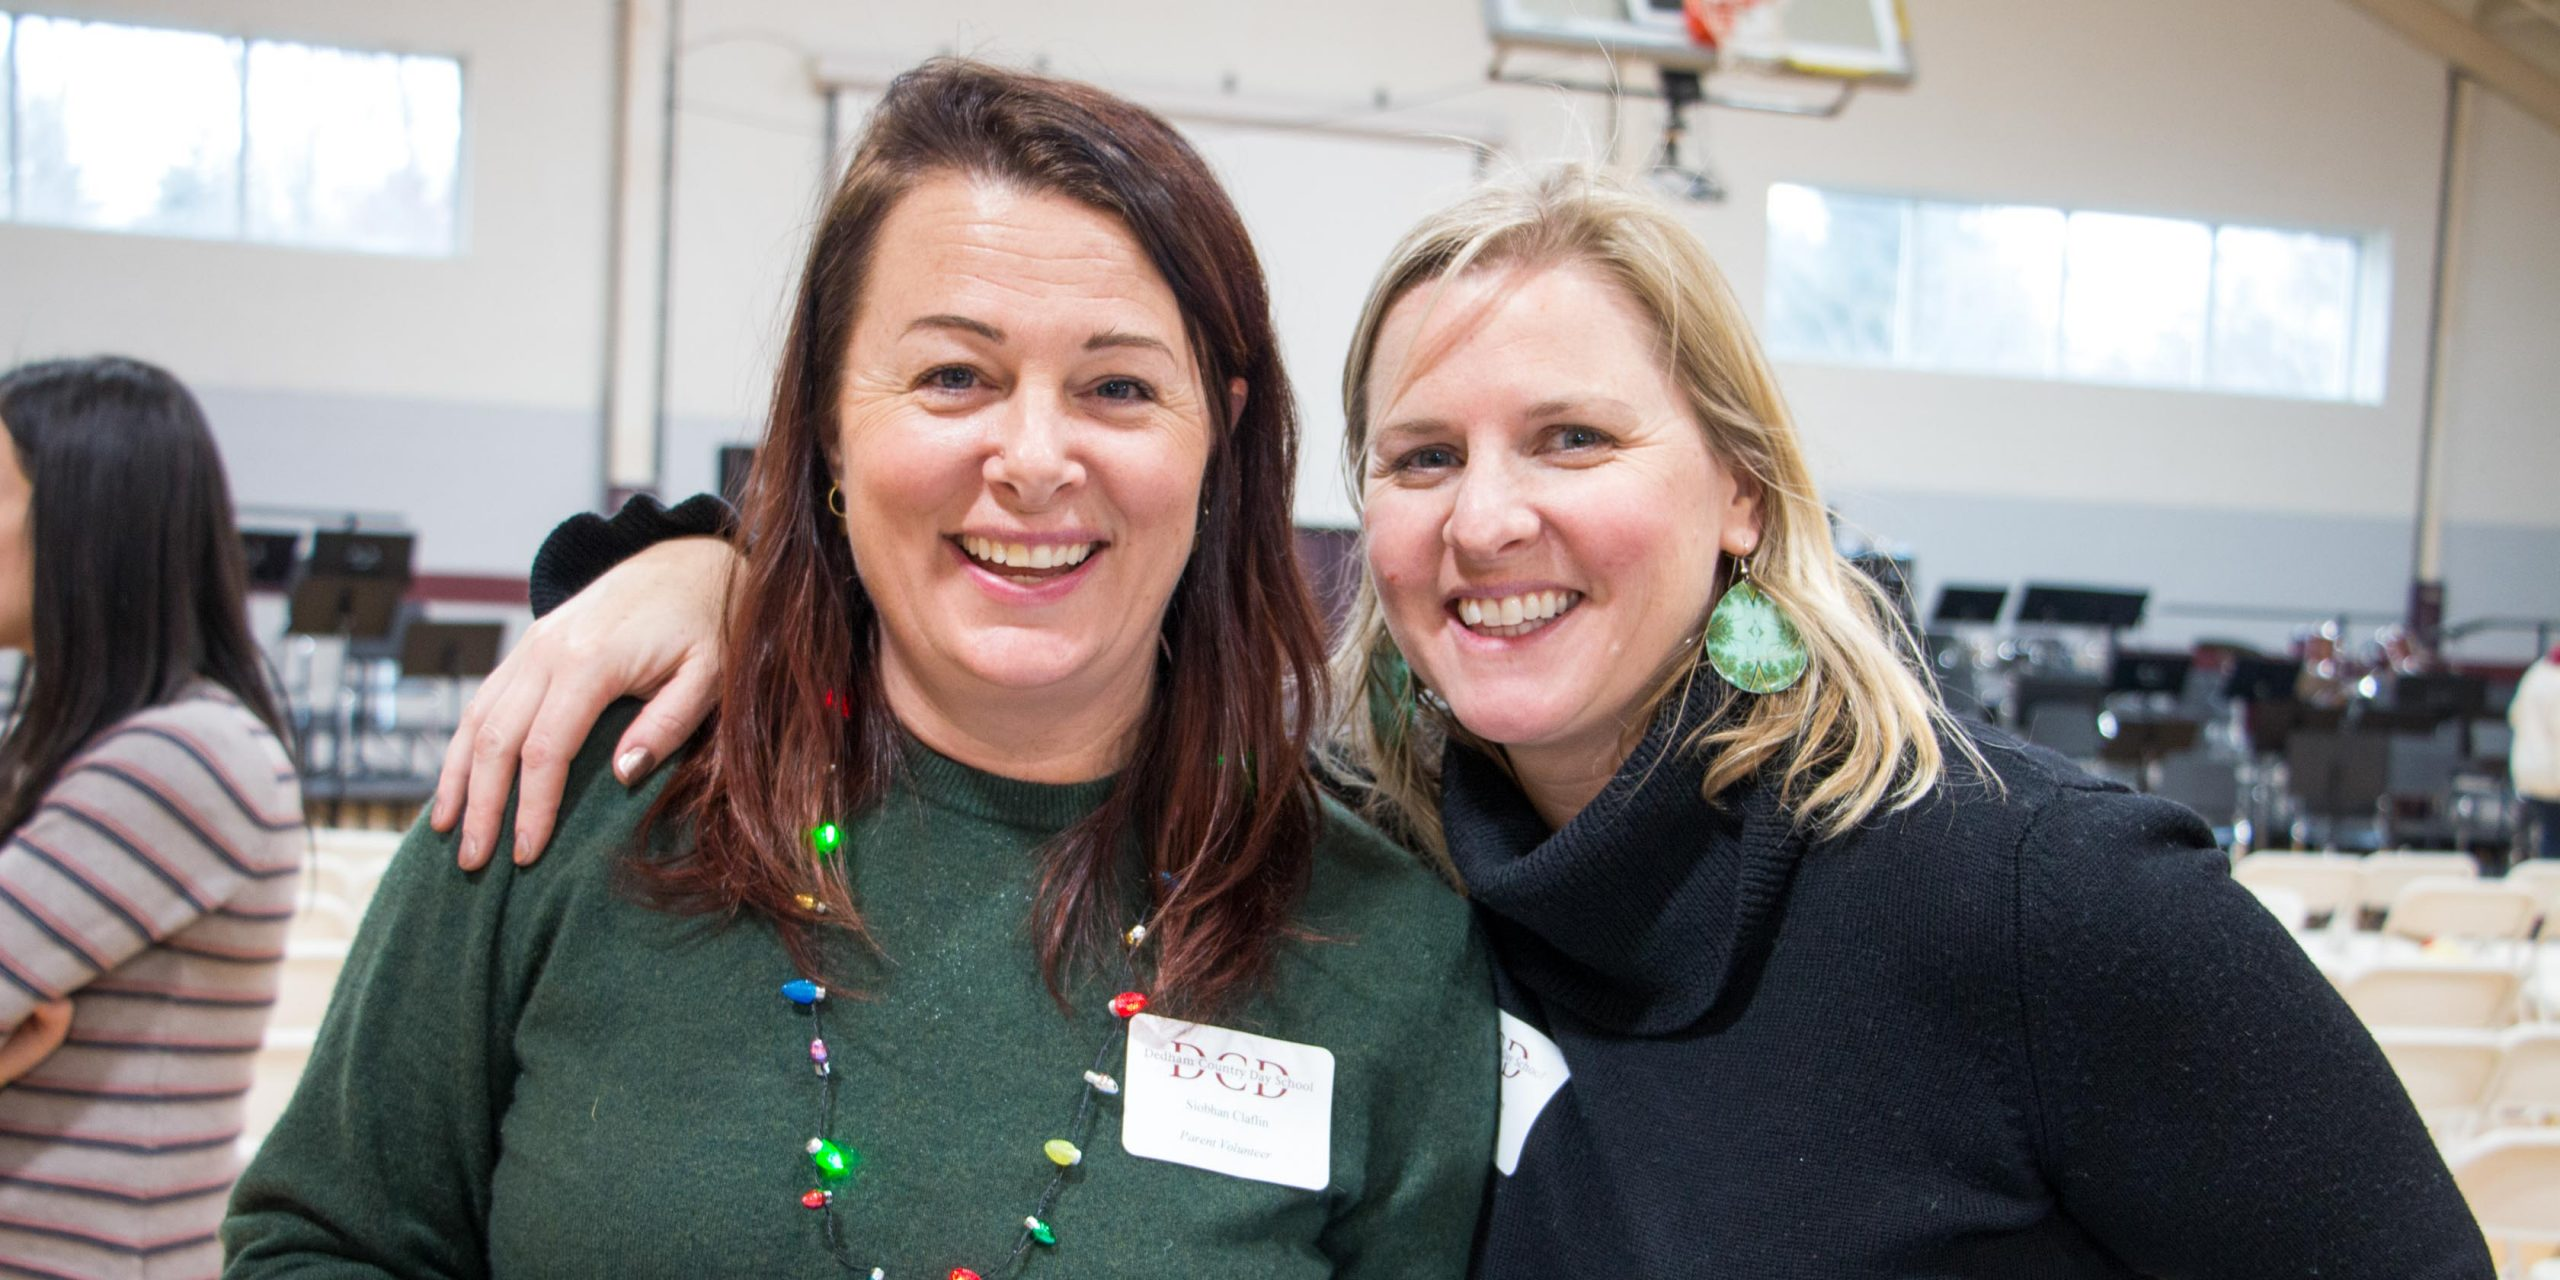 Two parents smiling at the camera at a parent volunteer event.